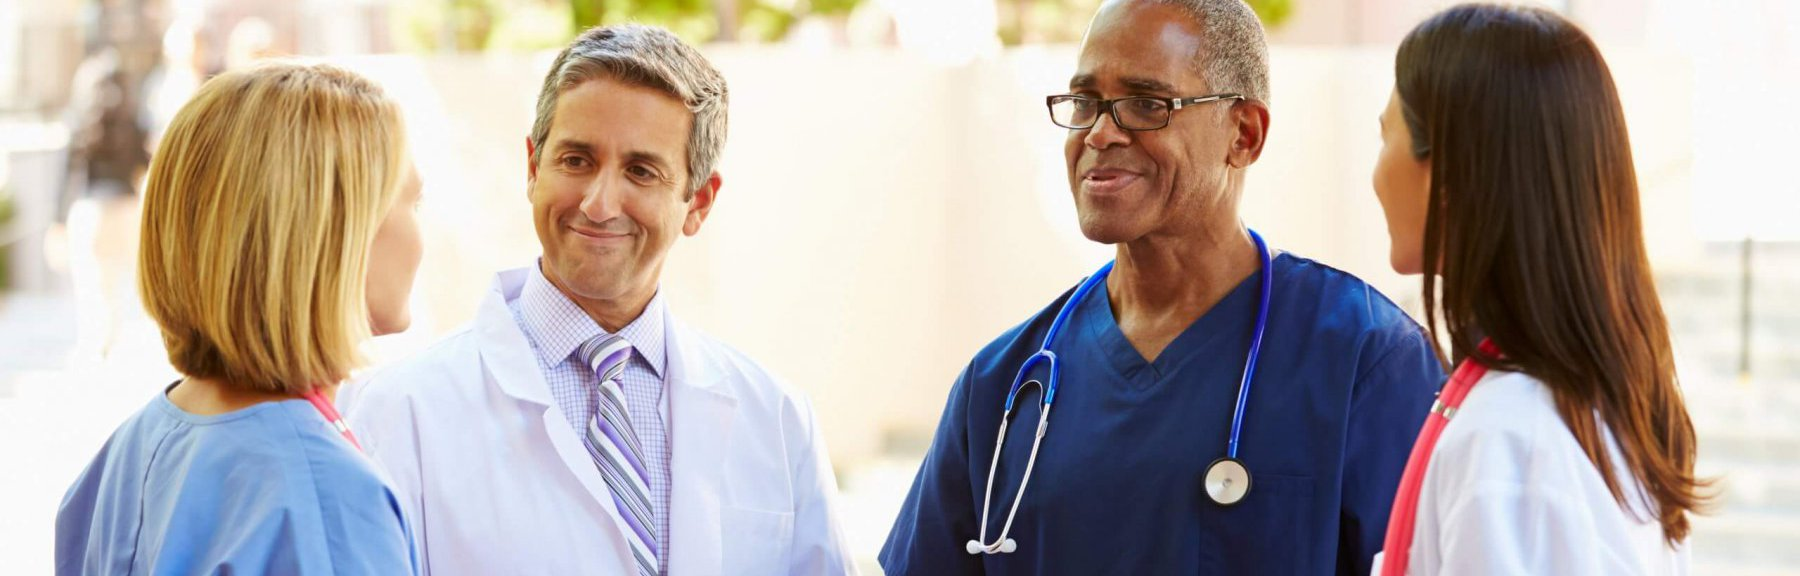 Nursing Turnover: Why it Happens and Retention Strategies